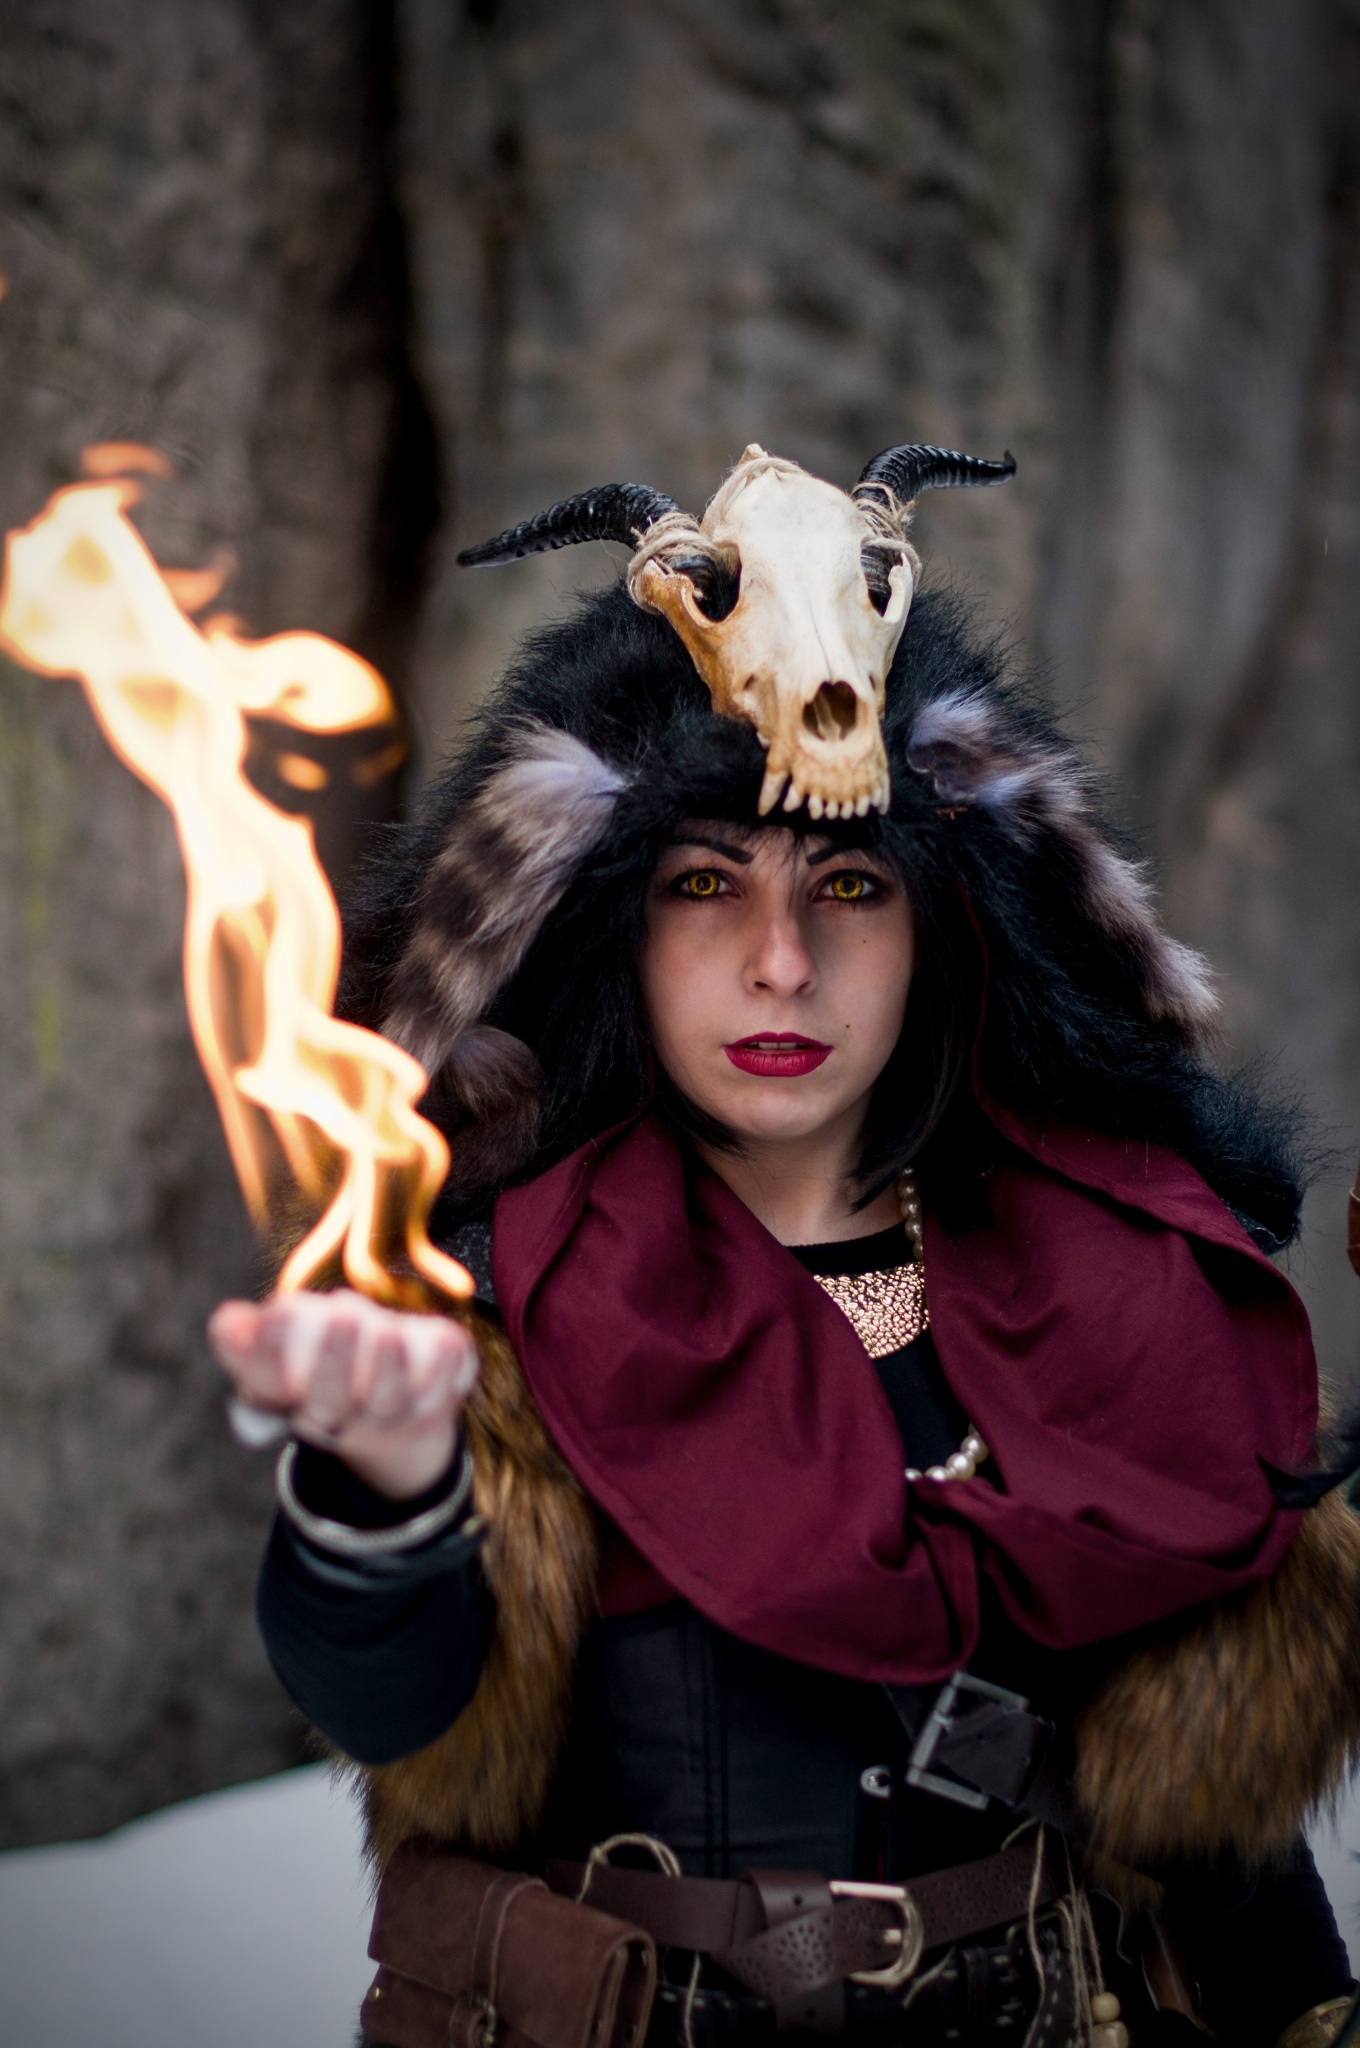 How to Photograph a Cosplay - witch cosplay